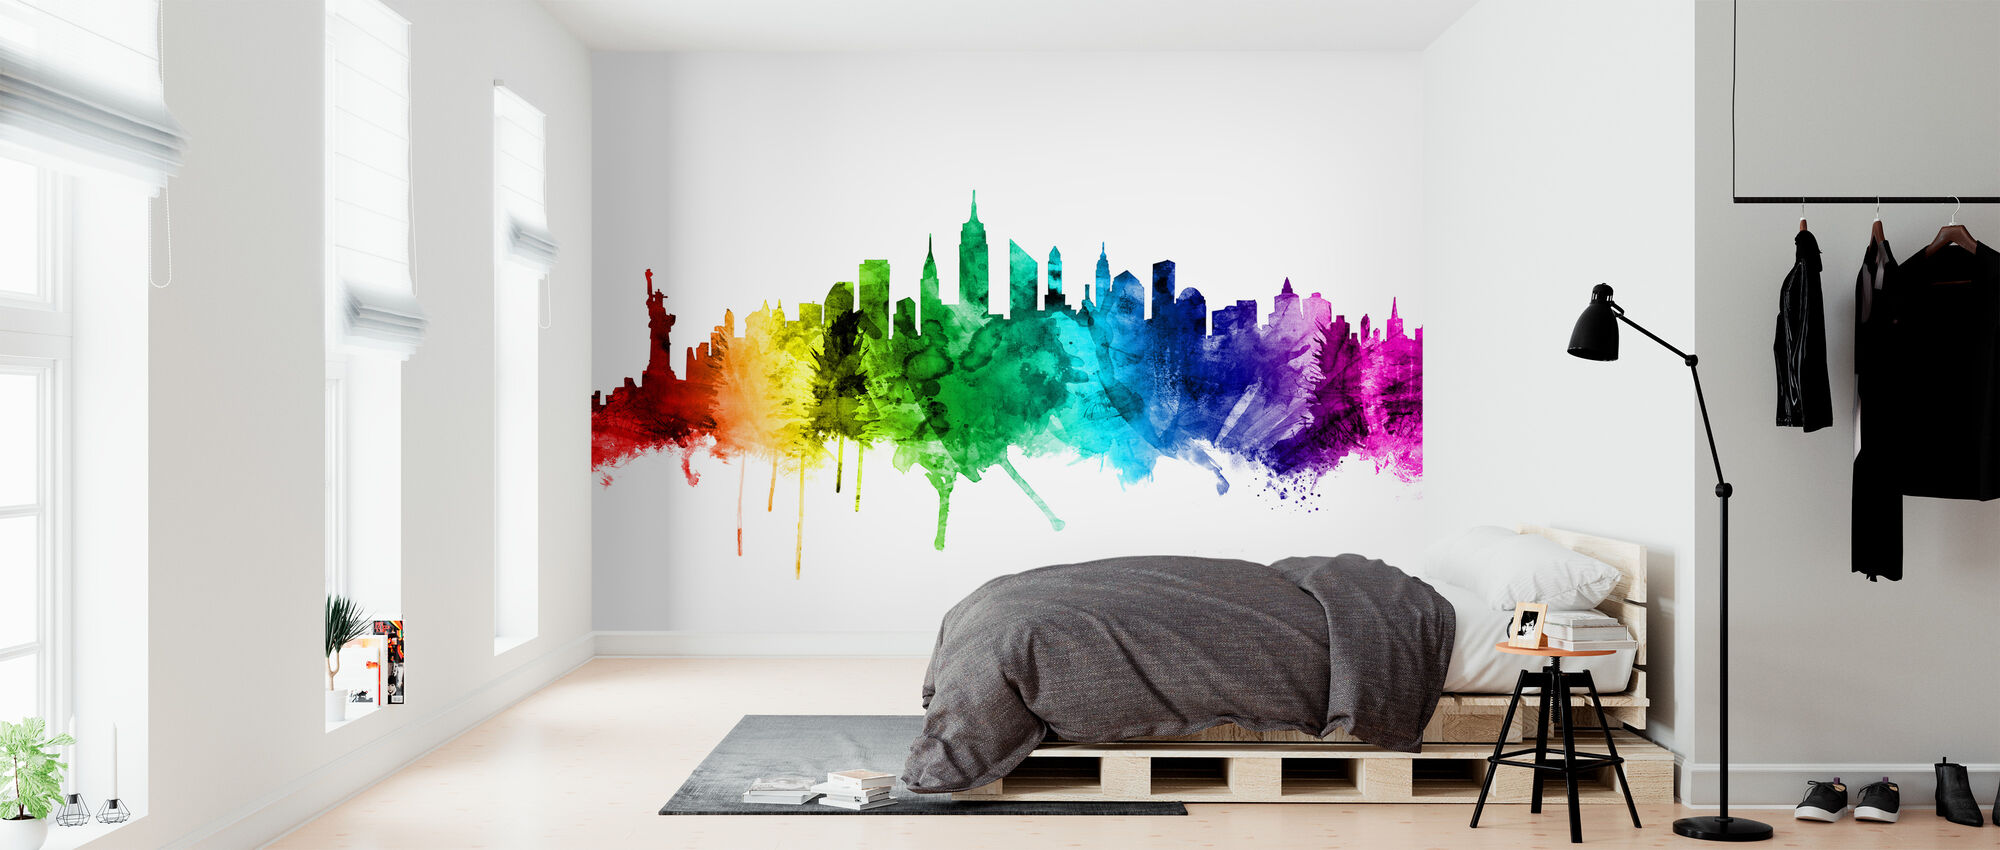 New York Skyline Rainbow 2 - Wallpaper - Bedroom